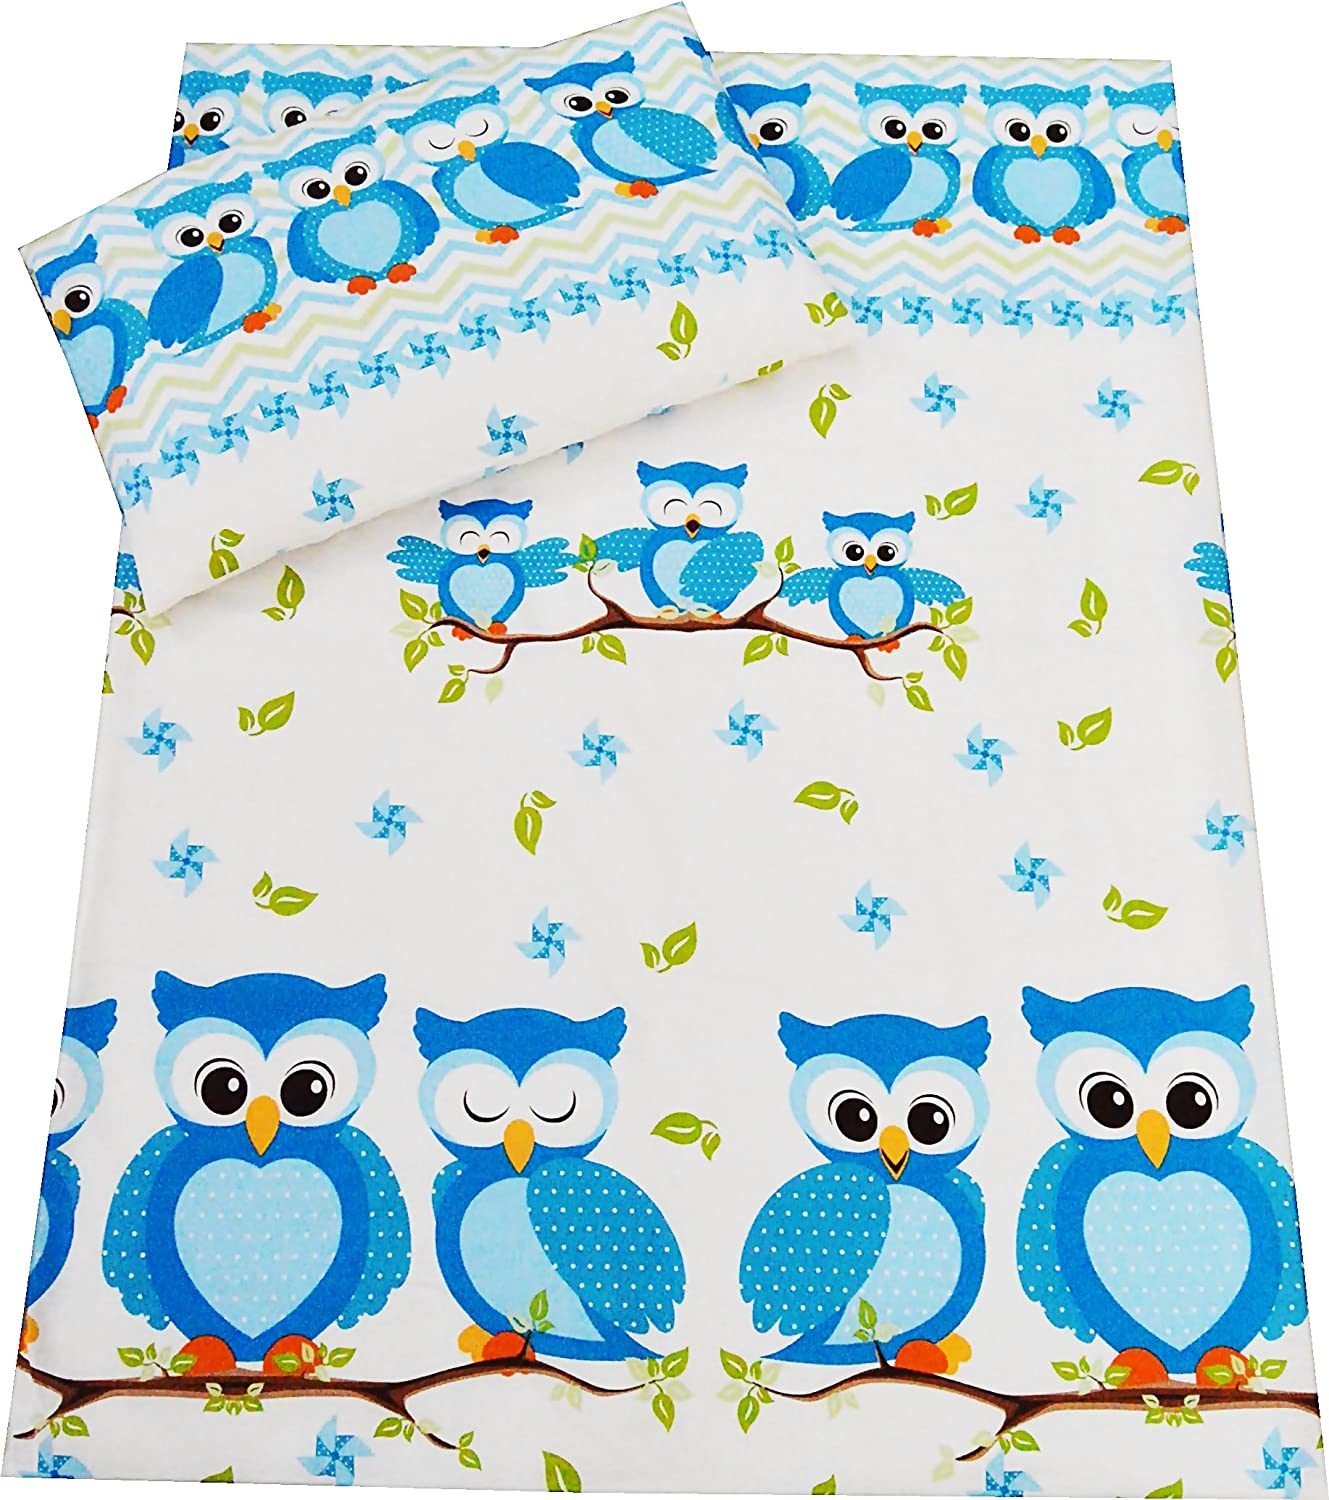 Babies-Island A2 Piece Bedding Set Pillowcase+Duvet Cover For Baby Toddler To Fit Cot/Cot Bed - BLUE OWLS WITH PINWHEELS (120x150 cm)